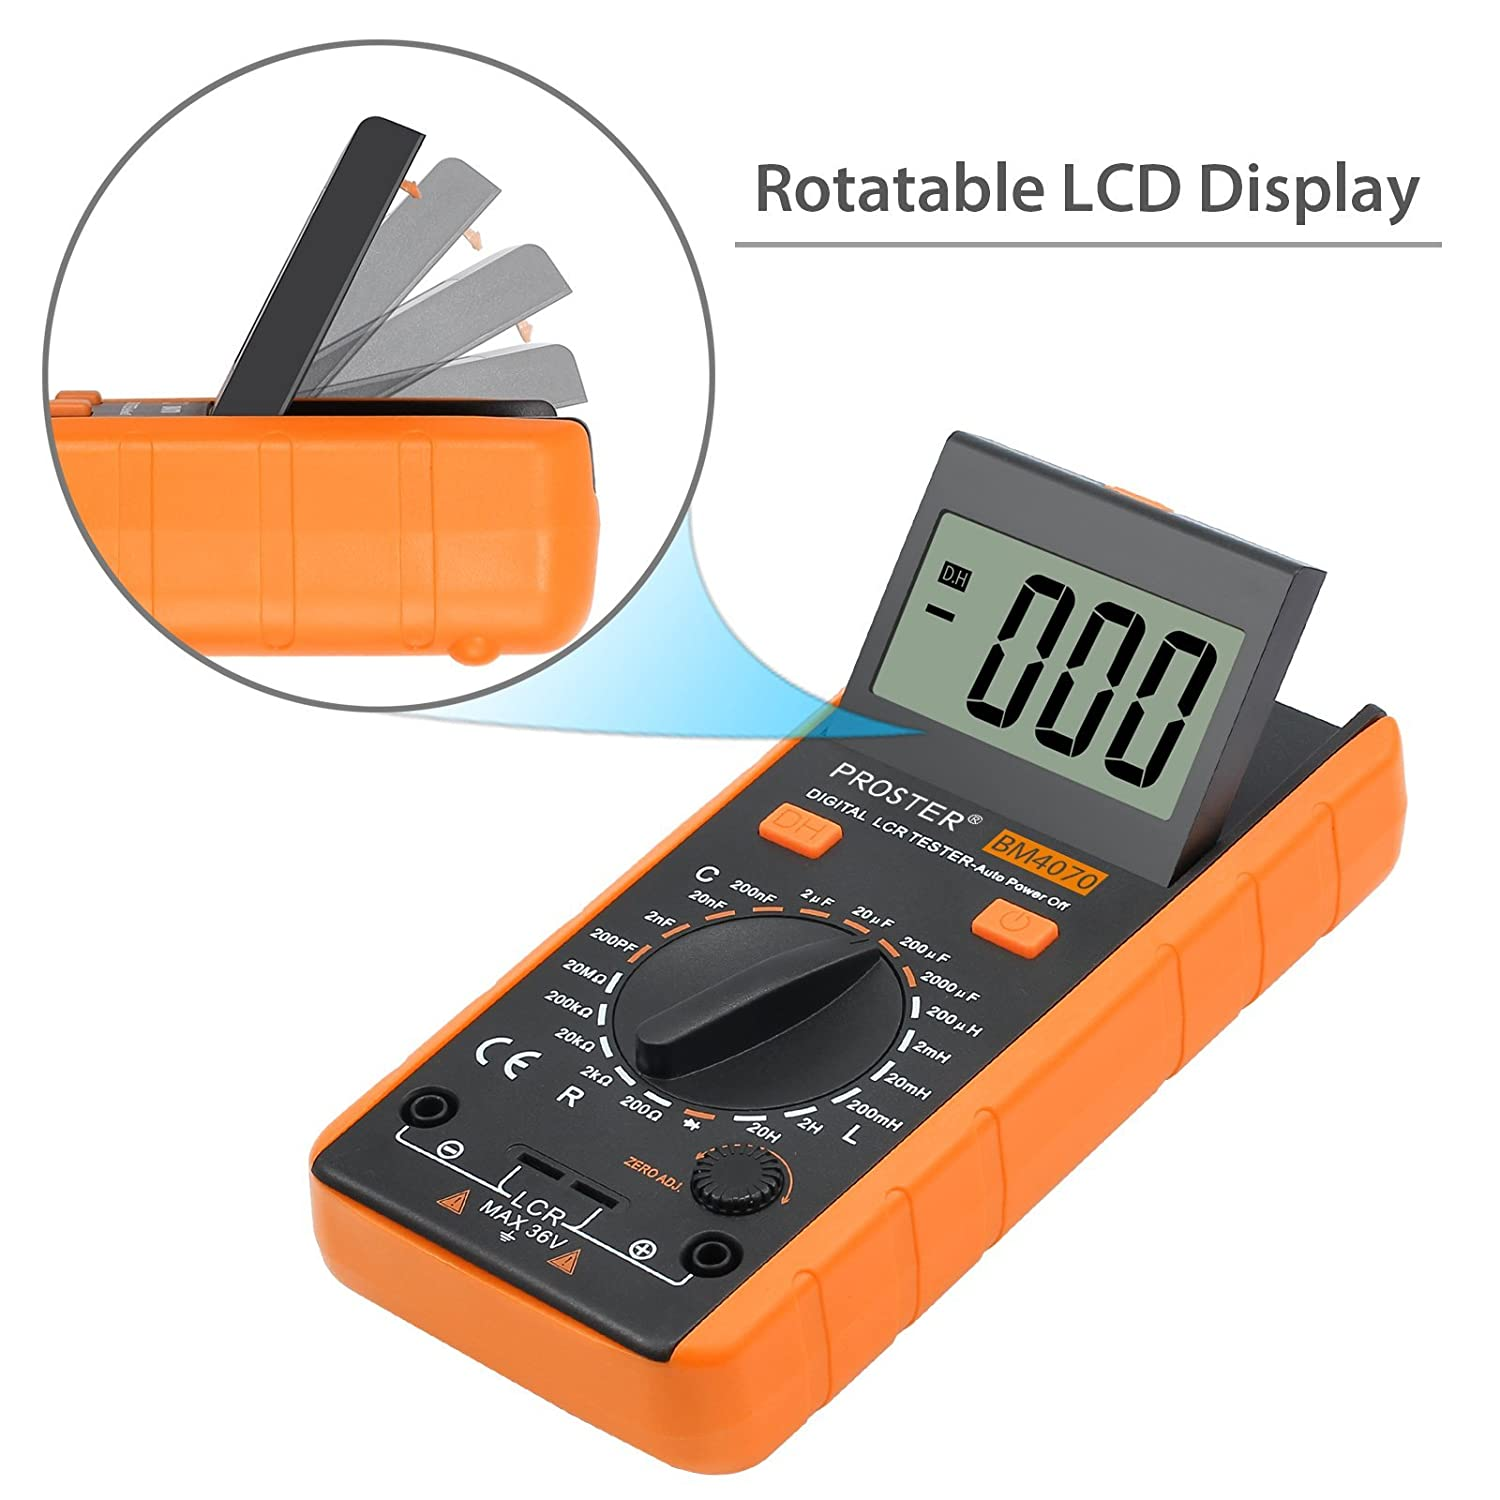 Proster Lcr Meter Lcd Capacitance Inductance Resistance Tester Circuit Schematic Of The And Adapter Measuring Self Discharge With Overrange Display